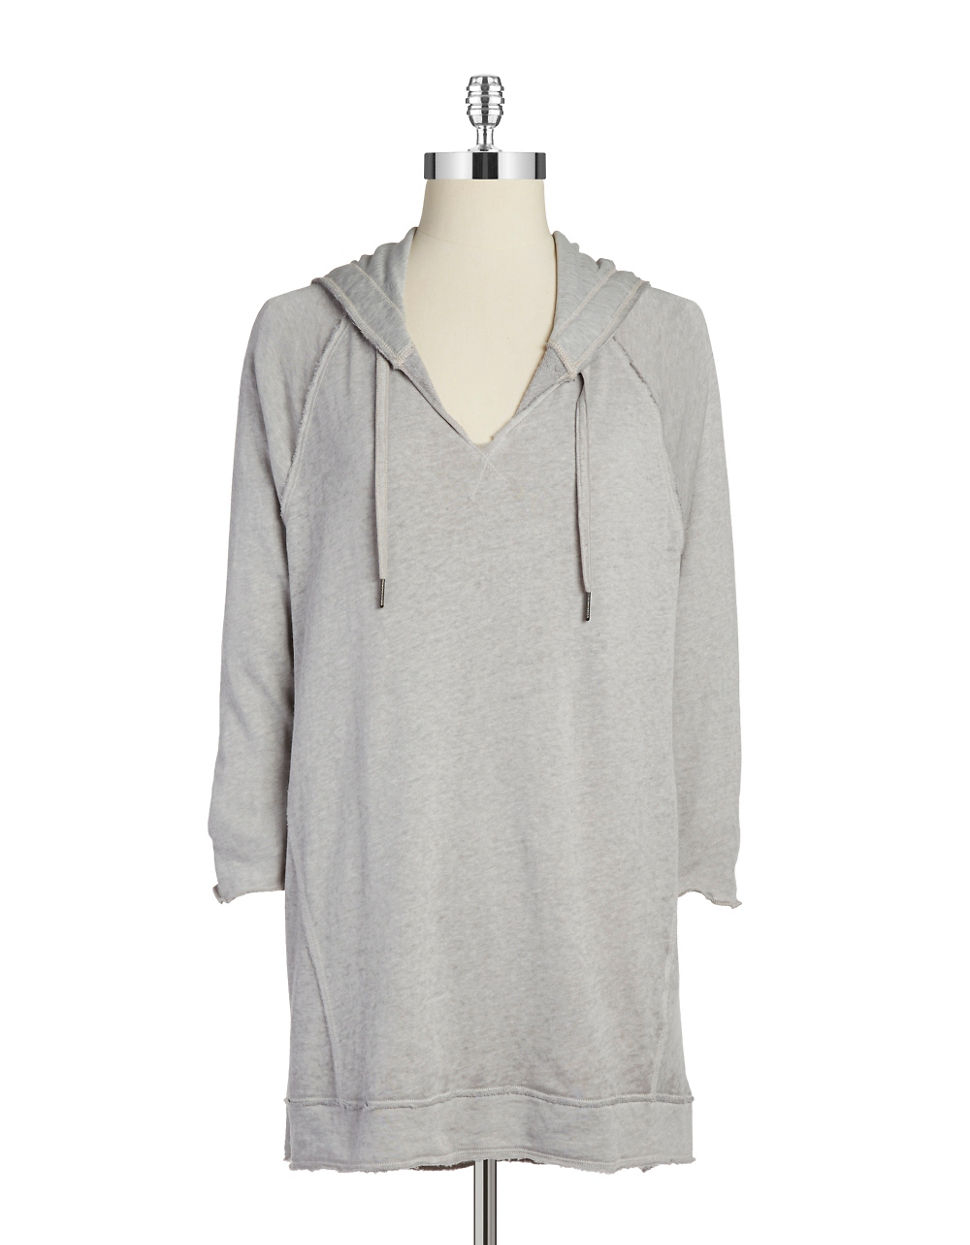 calvin klein terrycloth pullover hoodie in gray cinder lyst. Black Bedroom Furniture Sets. Home Design Ideas